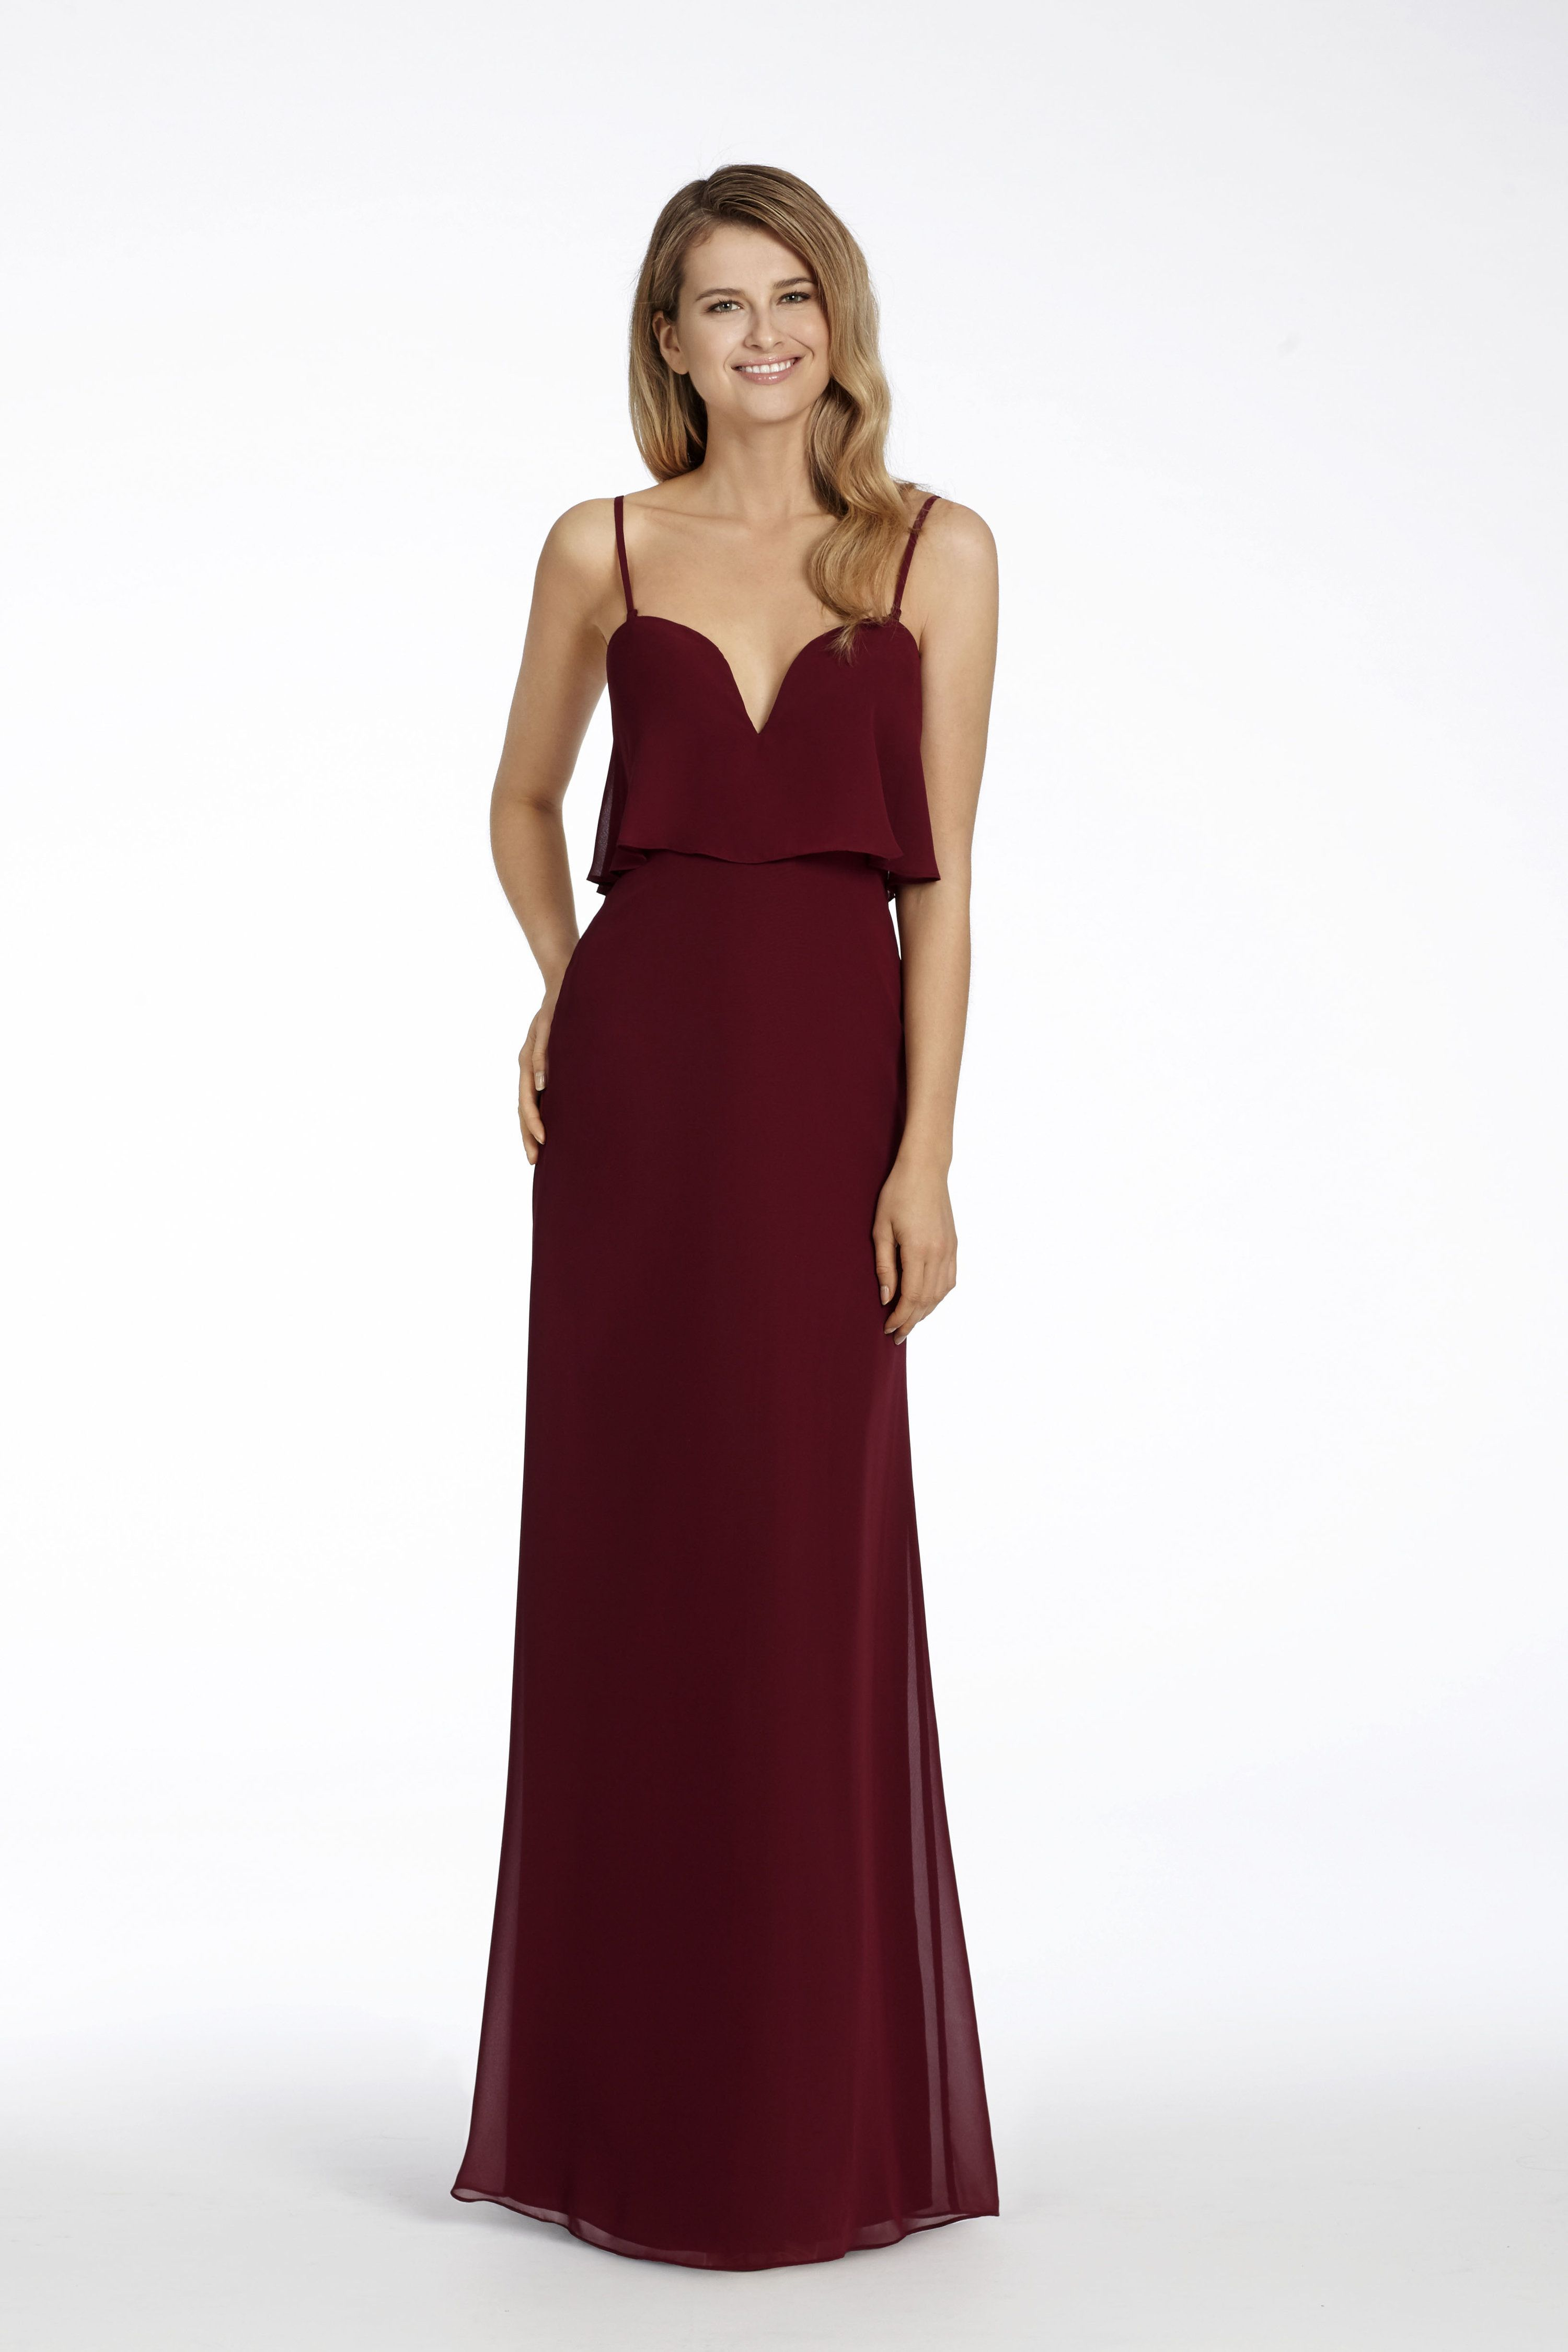 Hayley paige occasions style 5708 burgundy chiffon strapless a hayley paige occasions style 5708 burgundy chiffon strapless a line bridesmaid gown split ombrellifo Choice Image